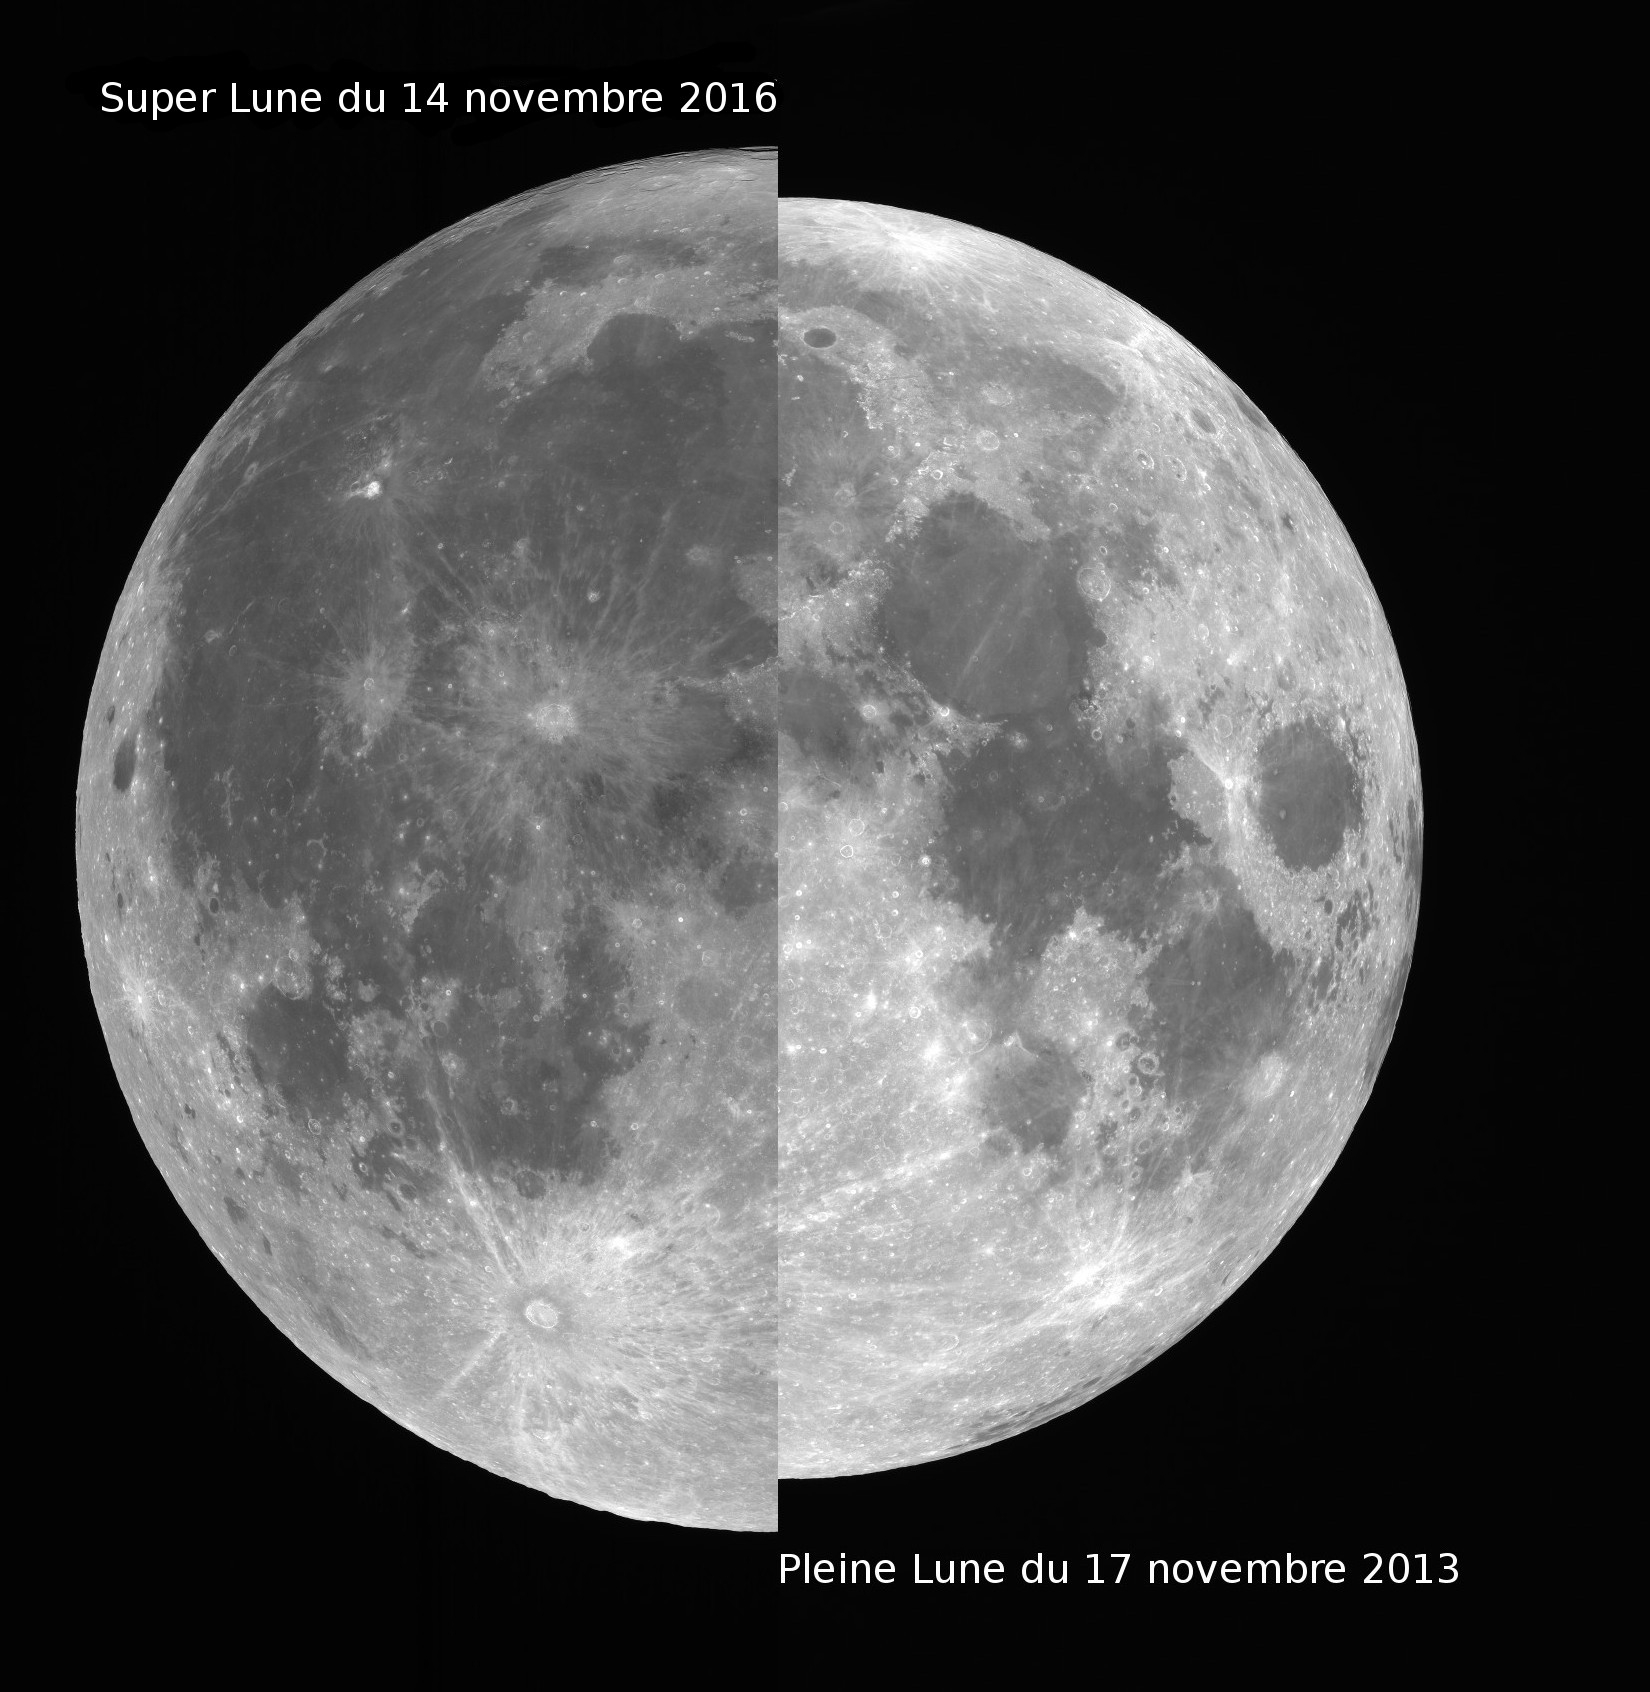 is_comparaison_pleiades_superlune_v3.jpg